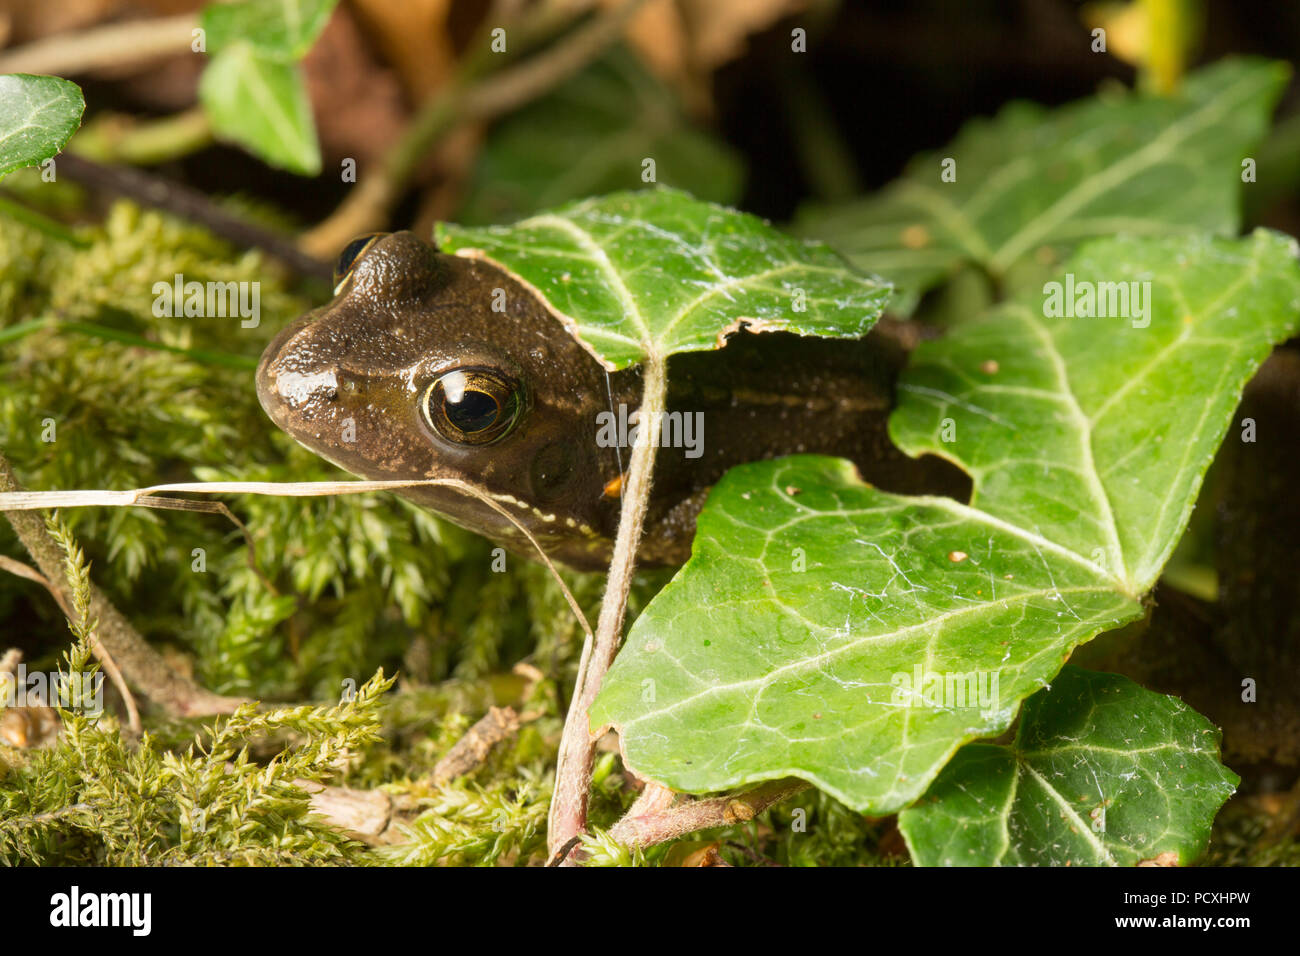 A common frog, Rana temporaria, photographed at night near ivy in a garden during the UK 2018 hot weather. Lancashire North West England UK GB - Stock Image